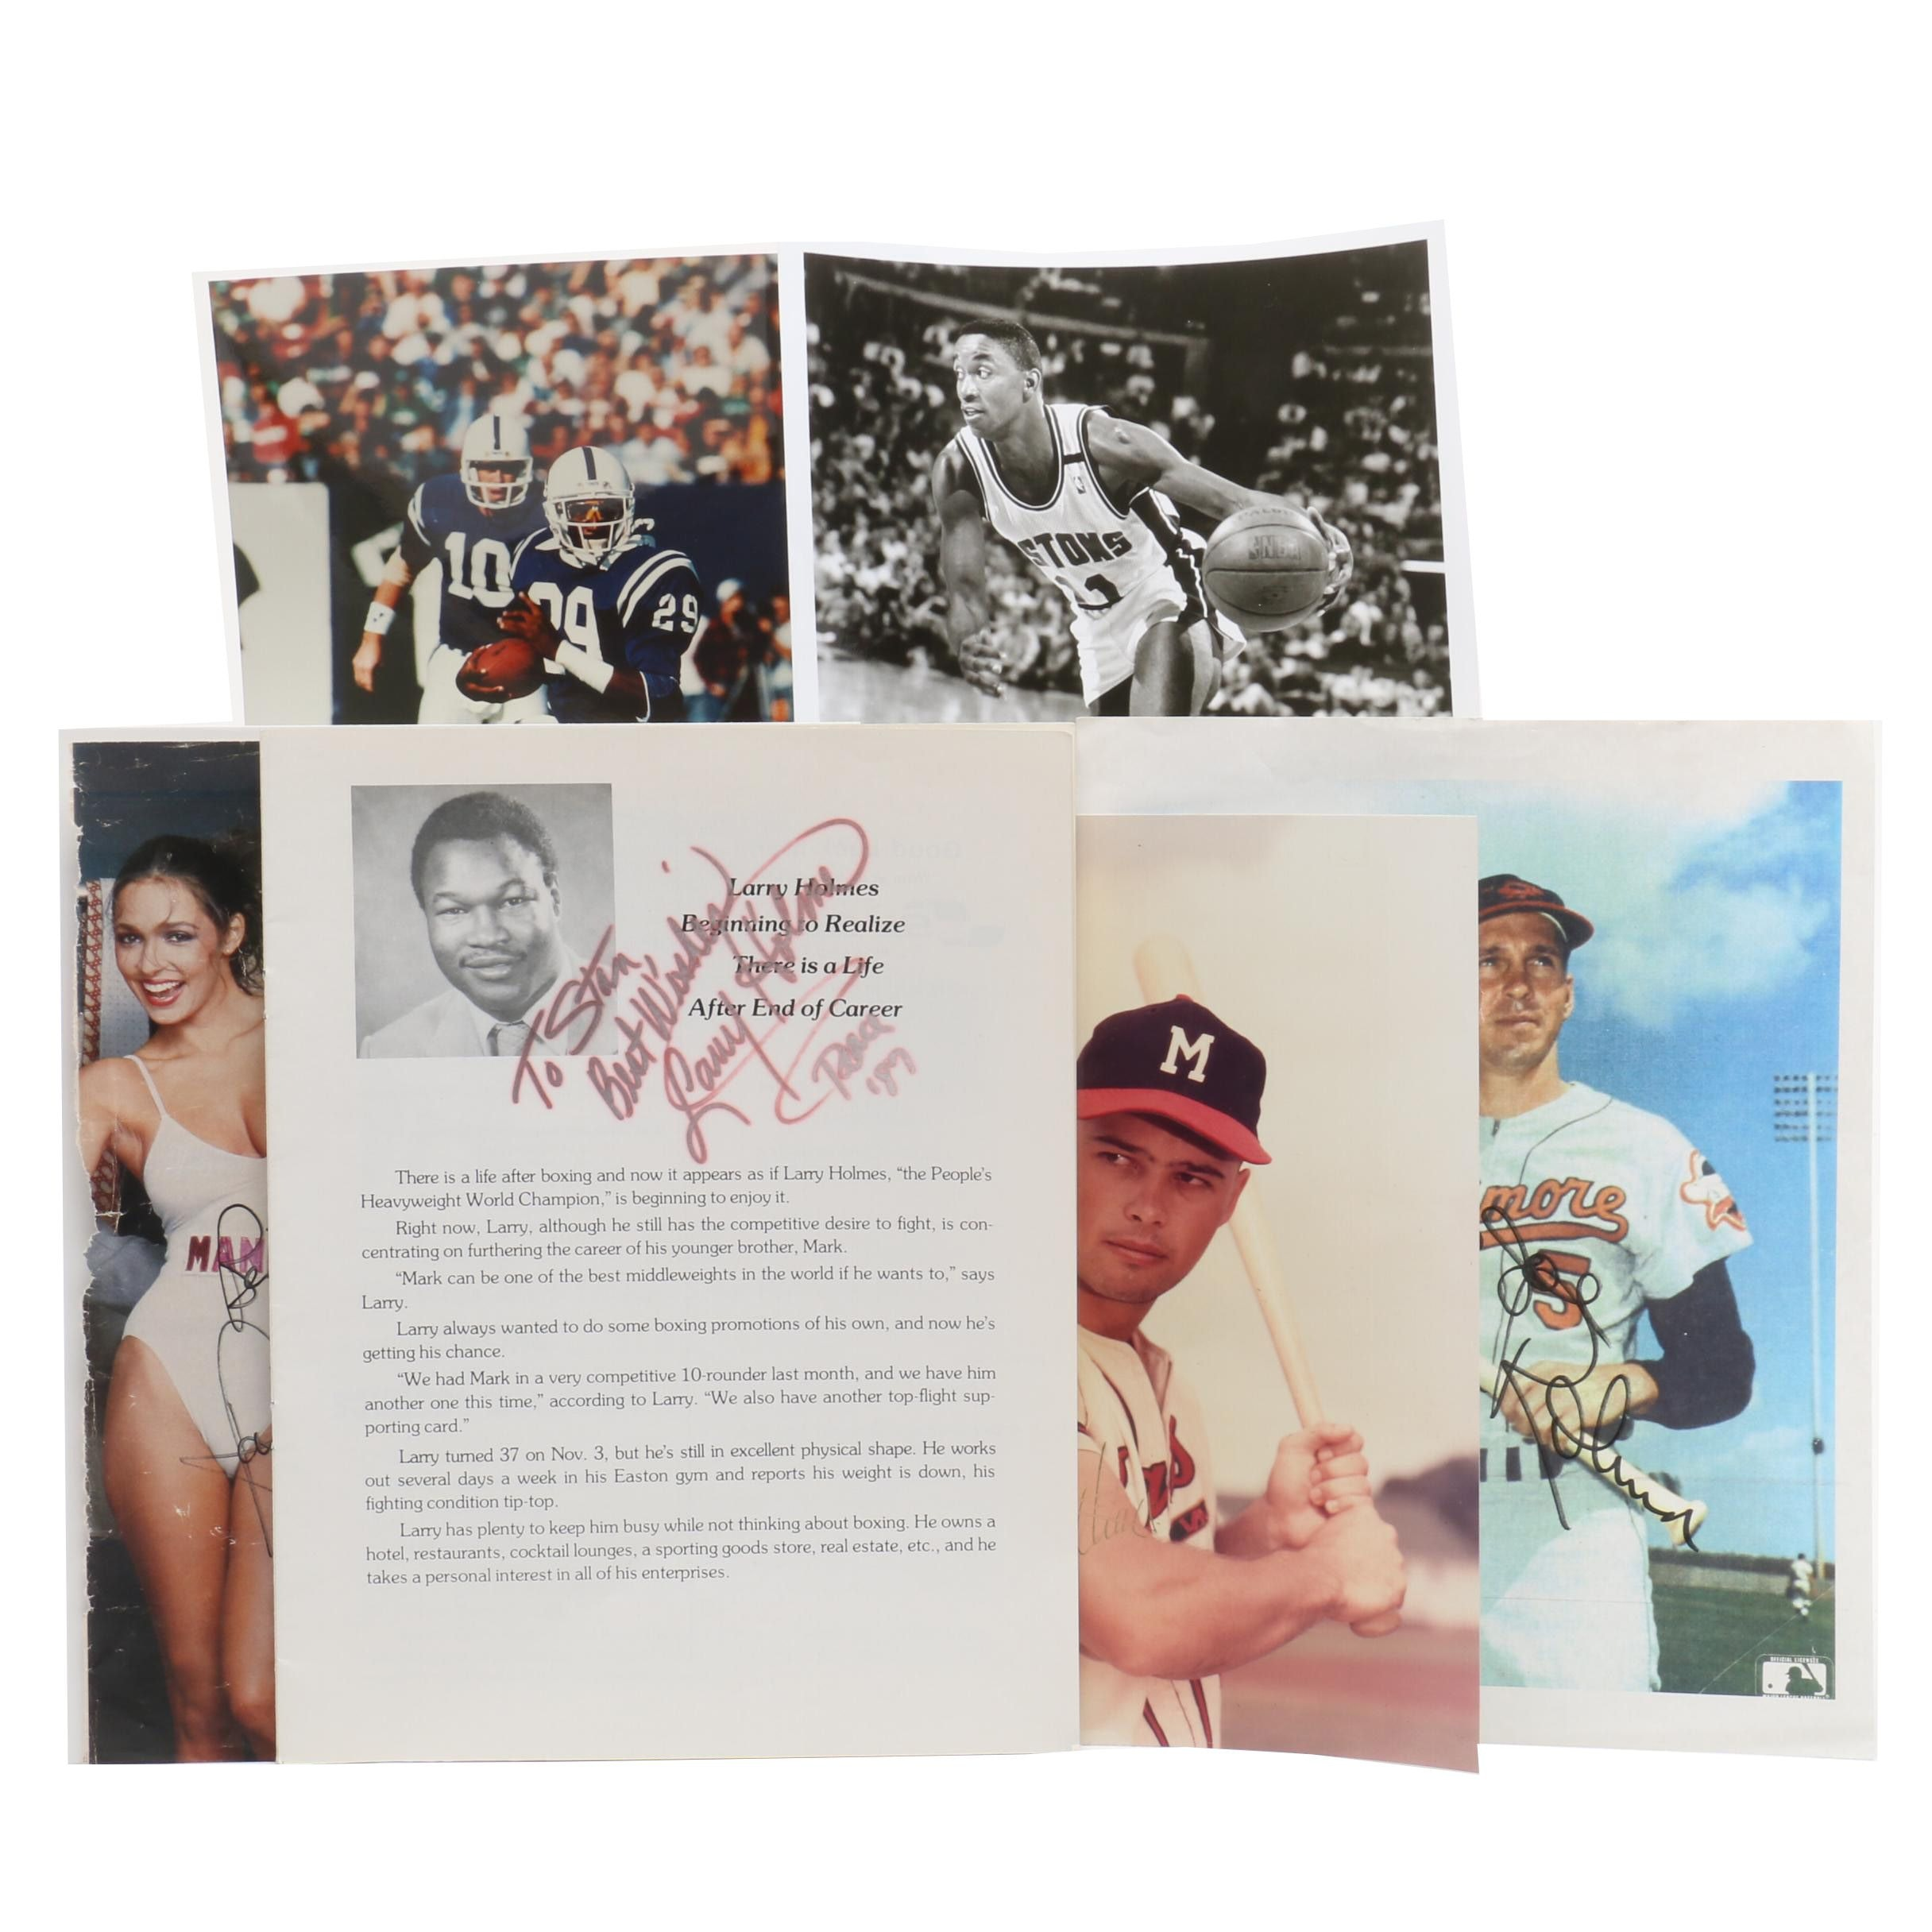 Autographed Photographs of Sports Figures